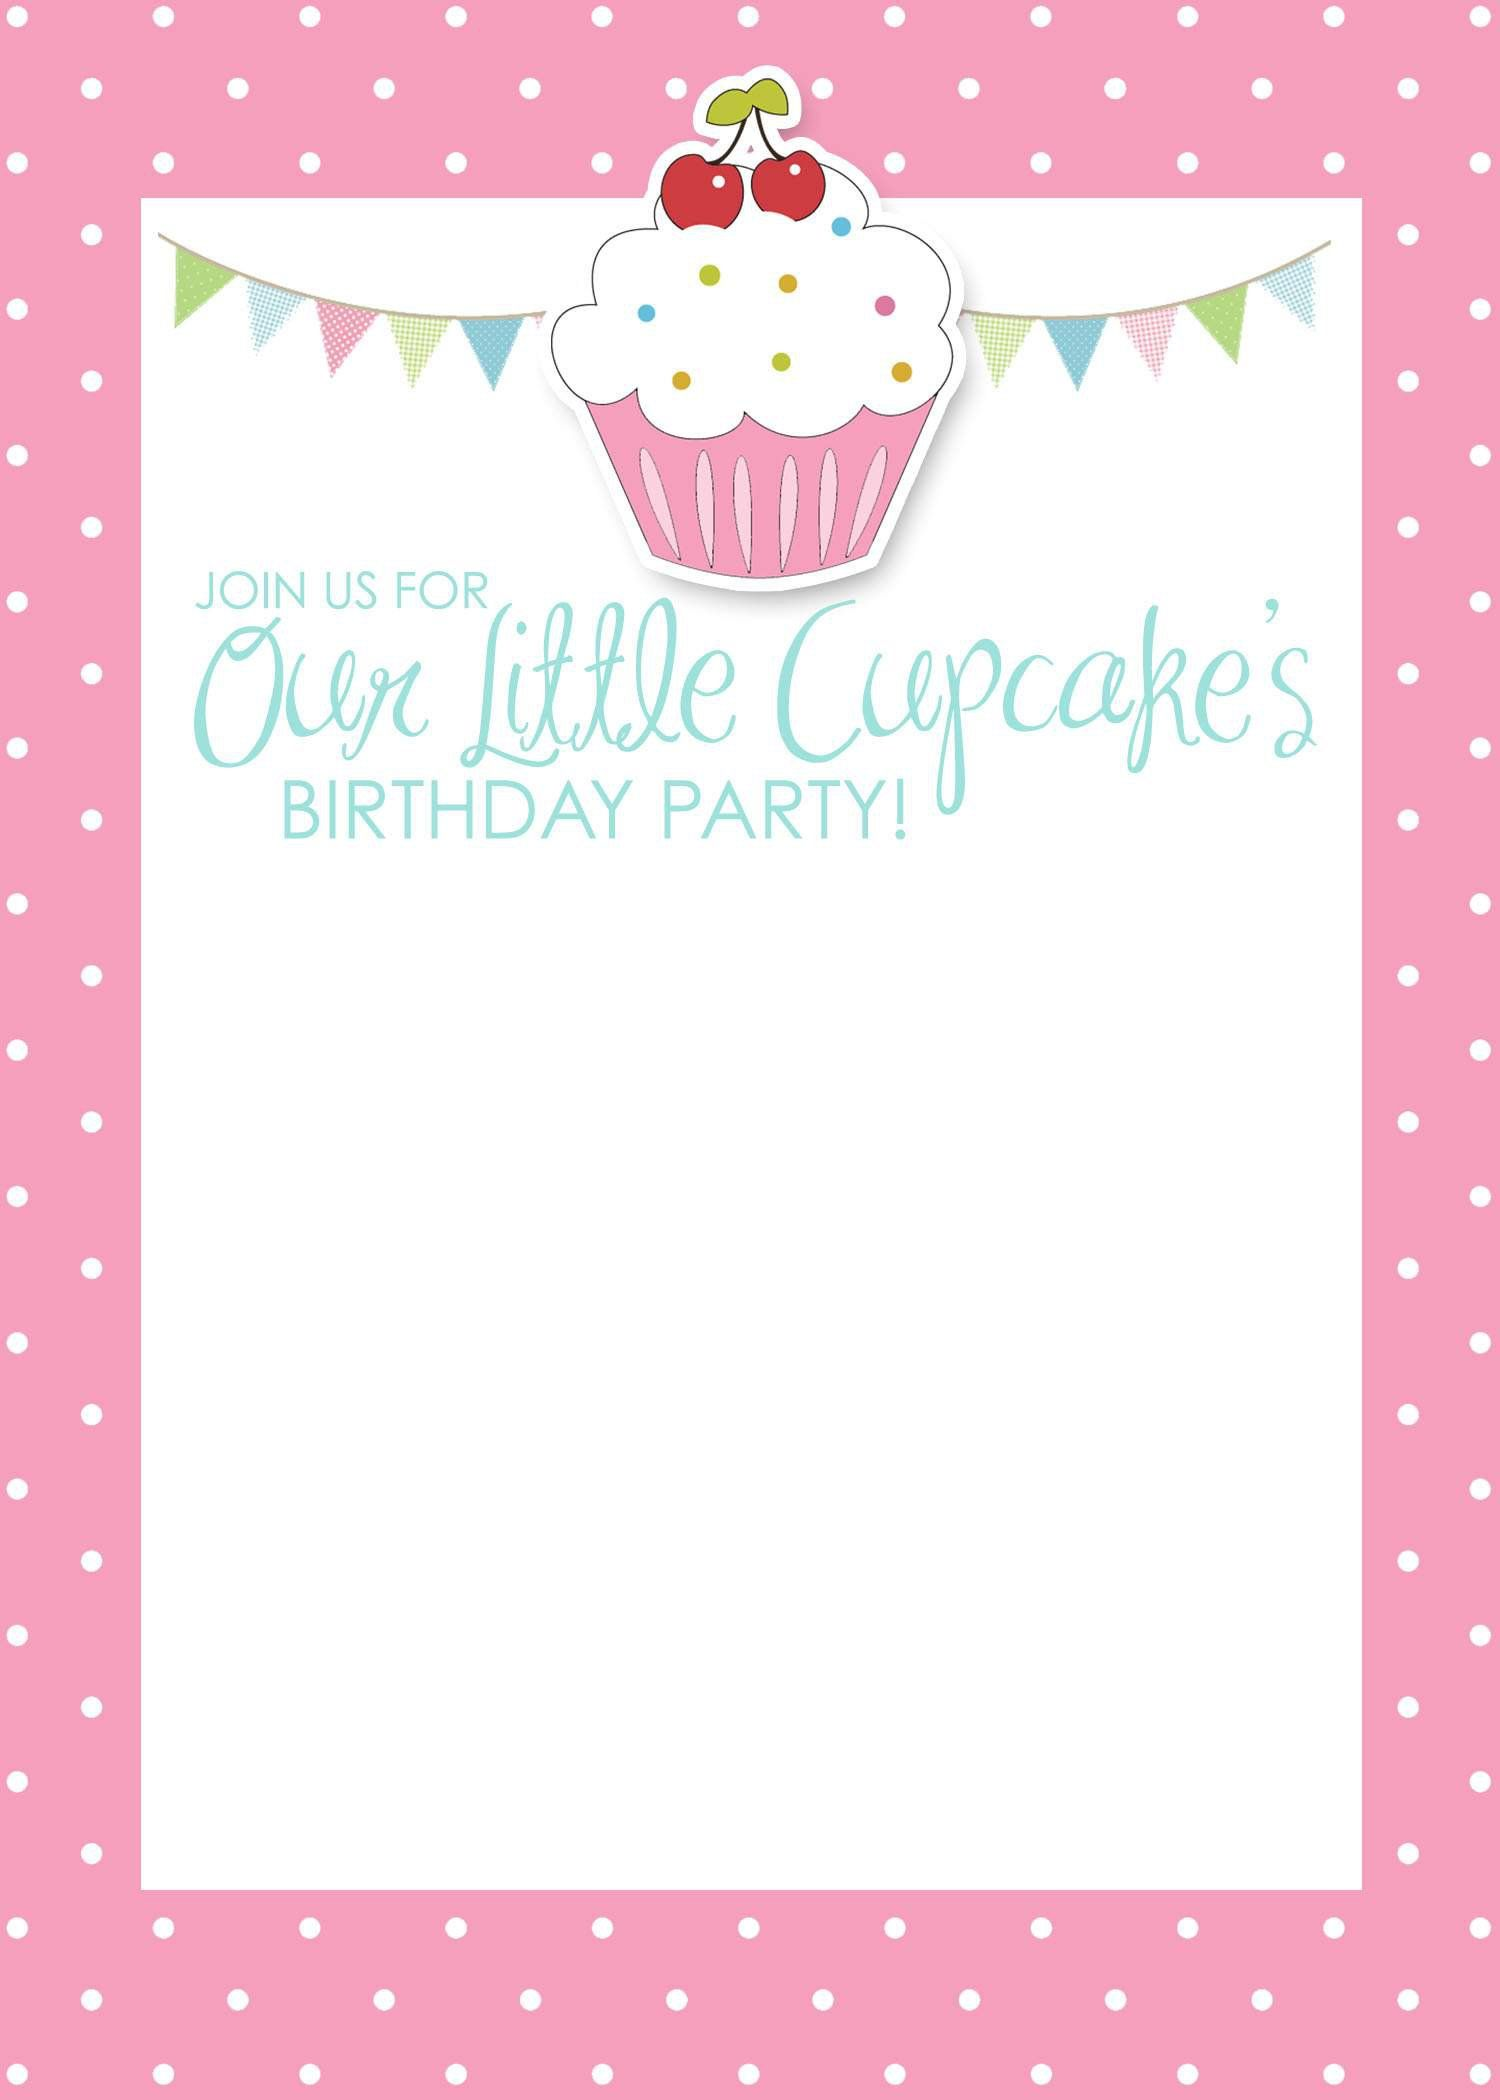 Free Greeting Cards Wishes Ecards Birthday